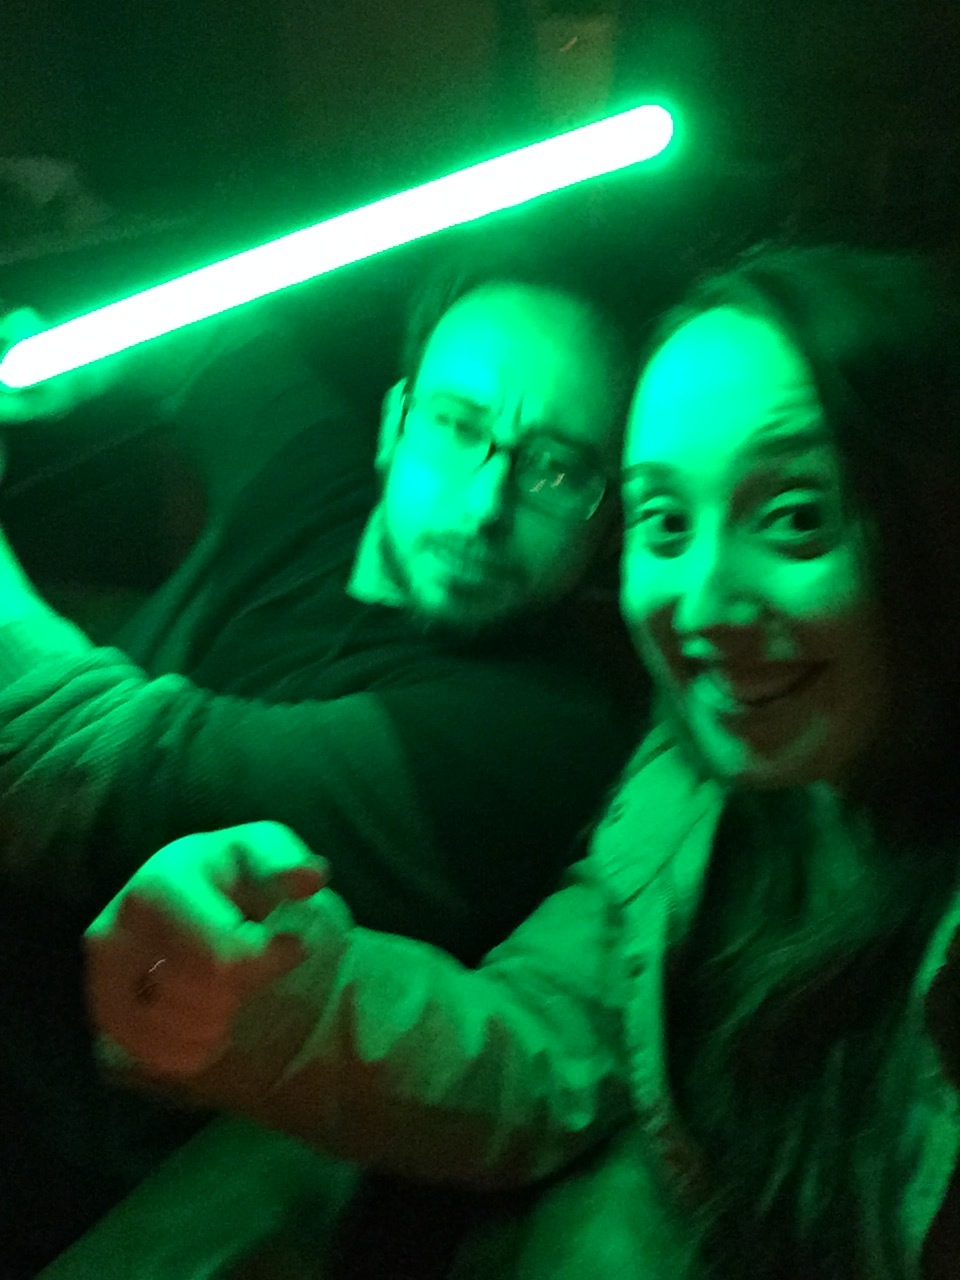 Star Wars night at The Park, our favorite bar/club.